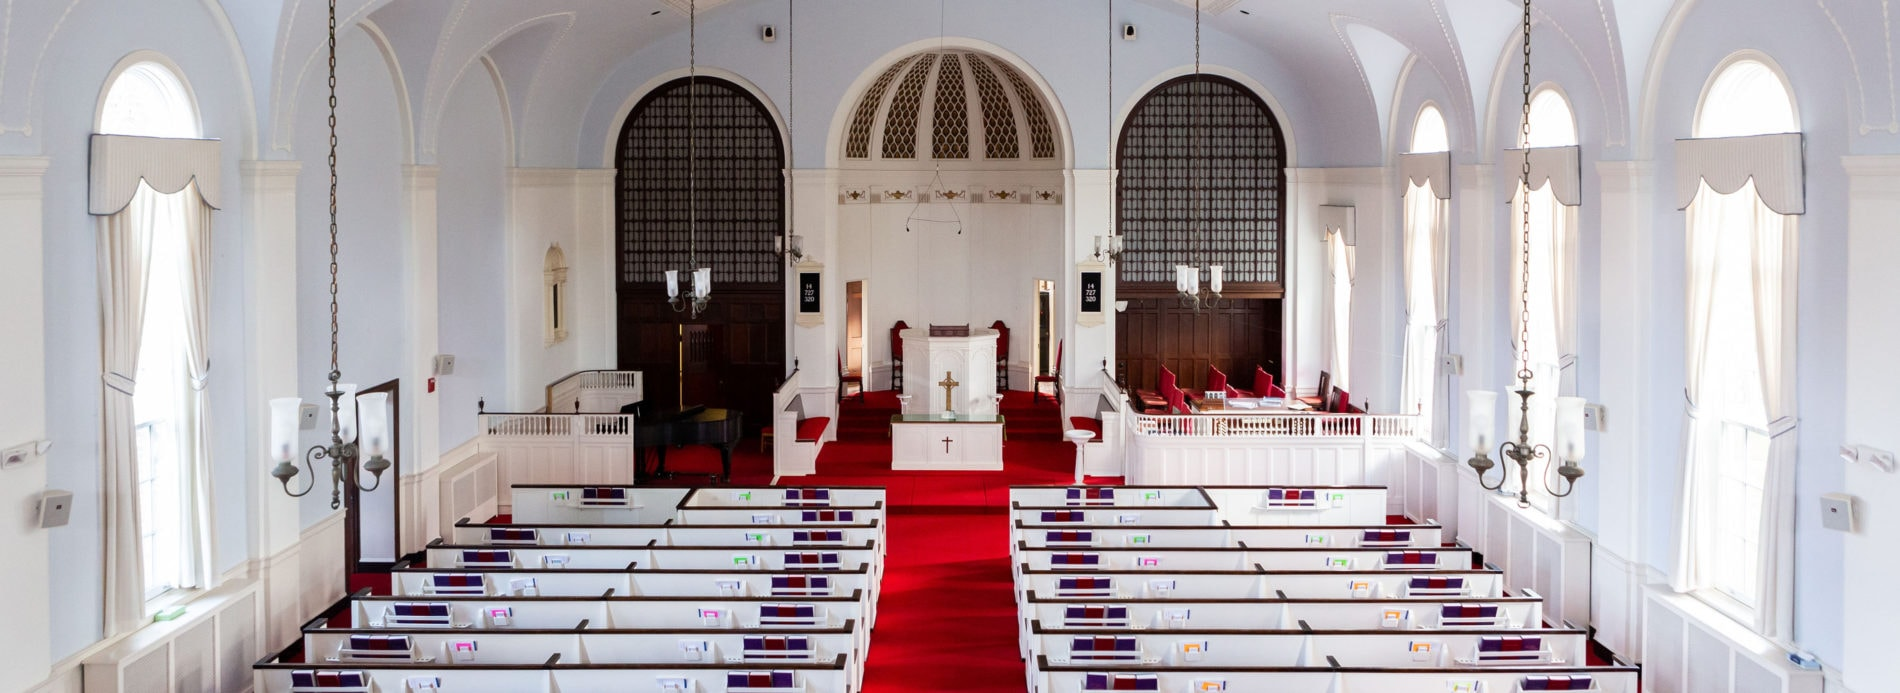 Interior view of the sanctuary of Catonsville Presbyterian Church, showing white pews, red carpet, and ornate chancel.